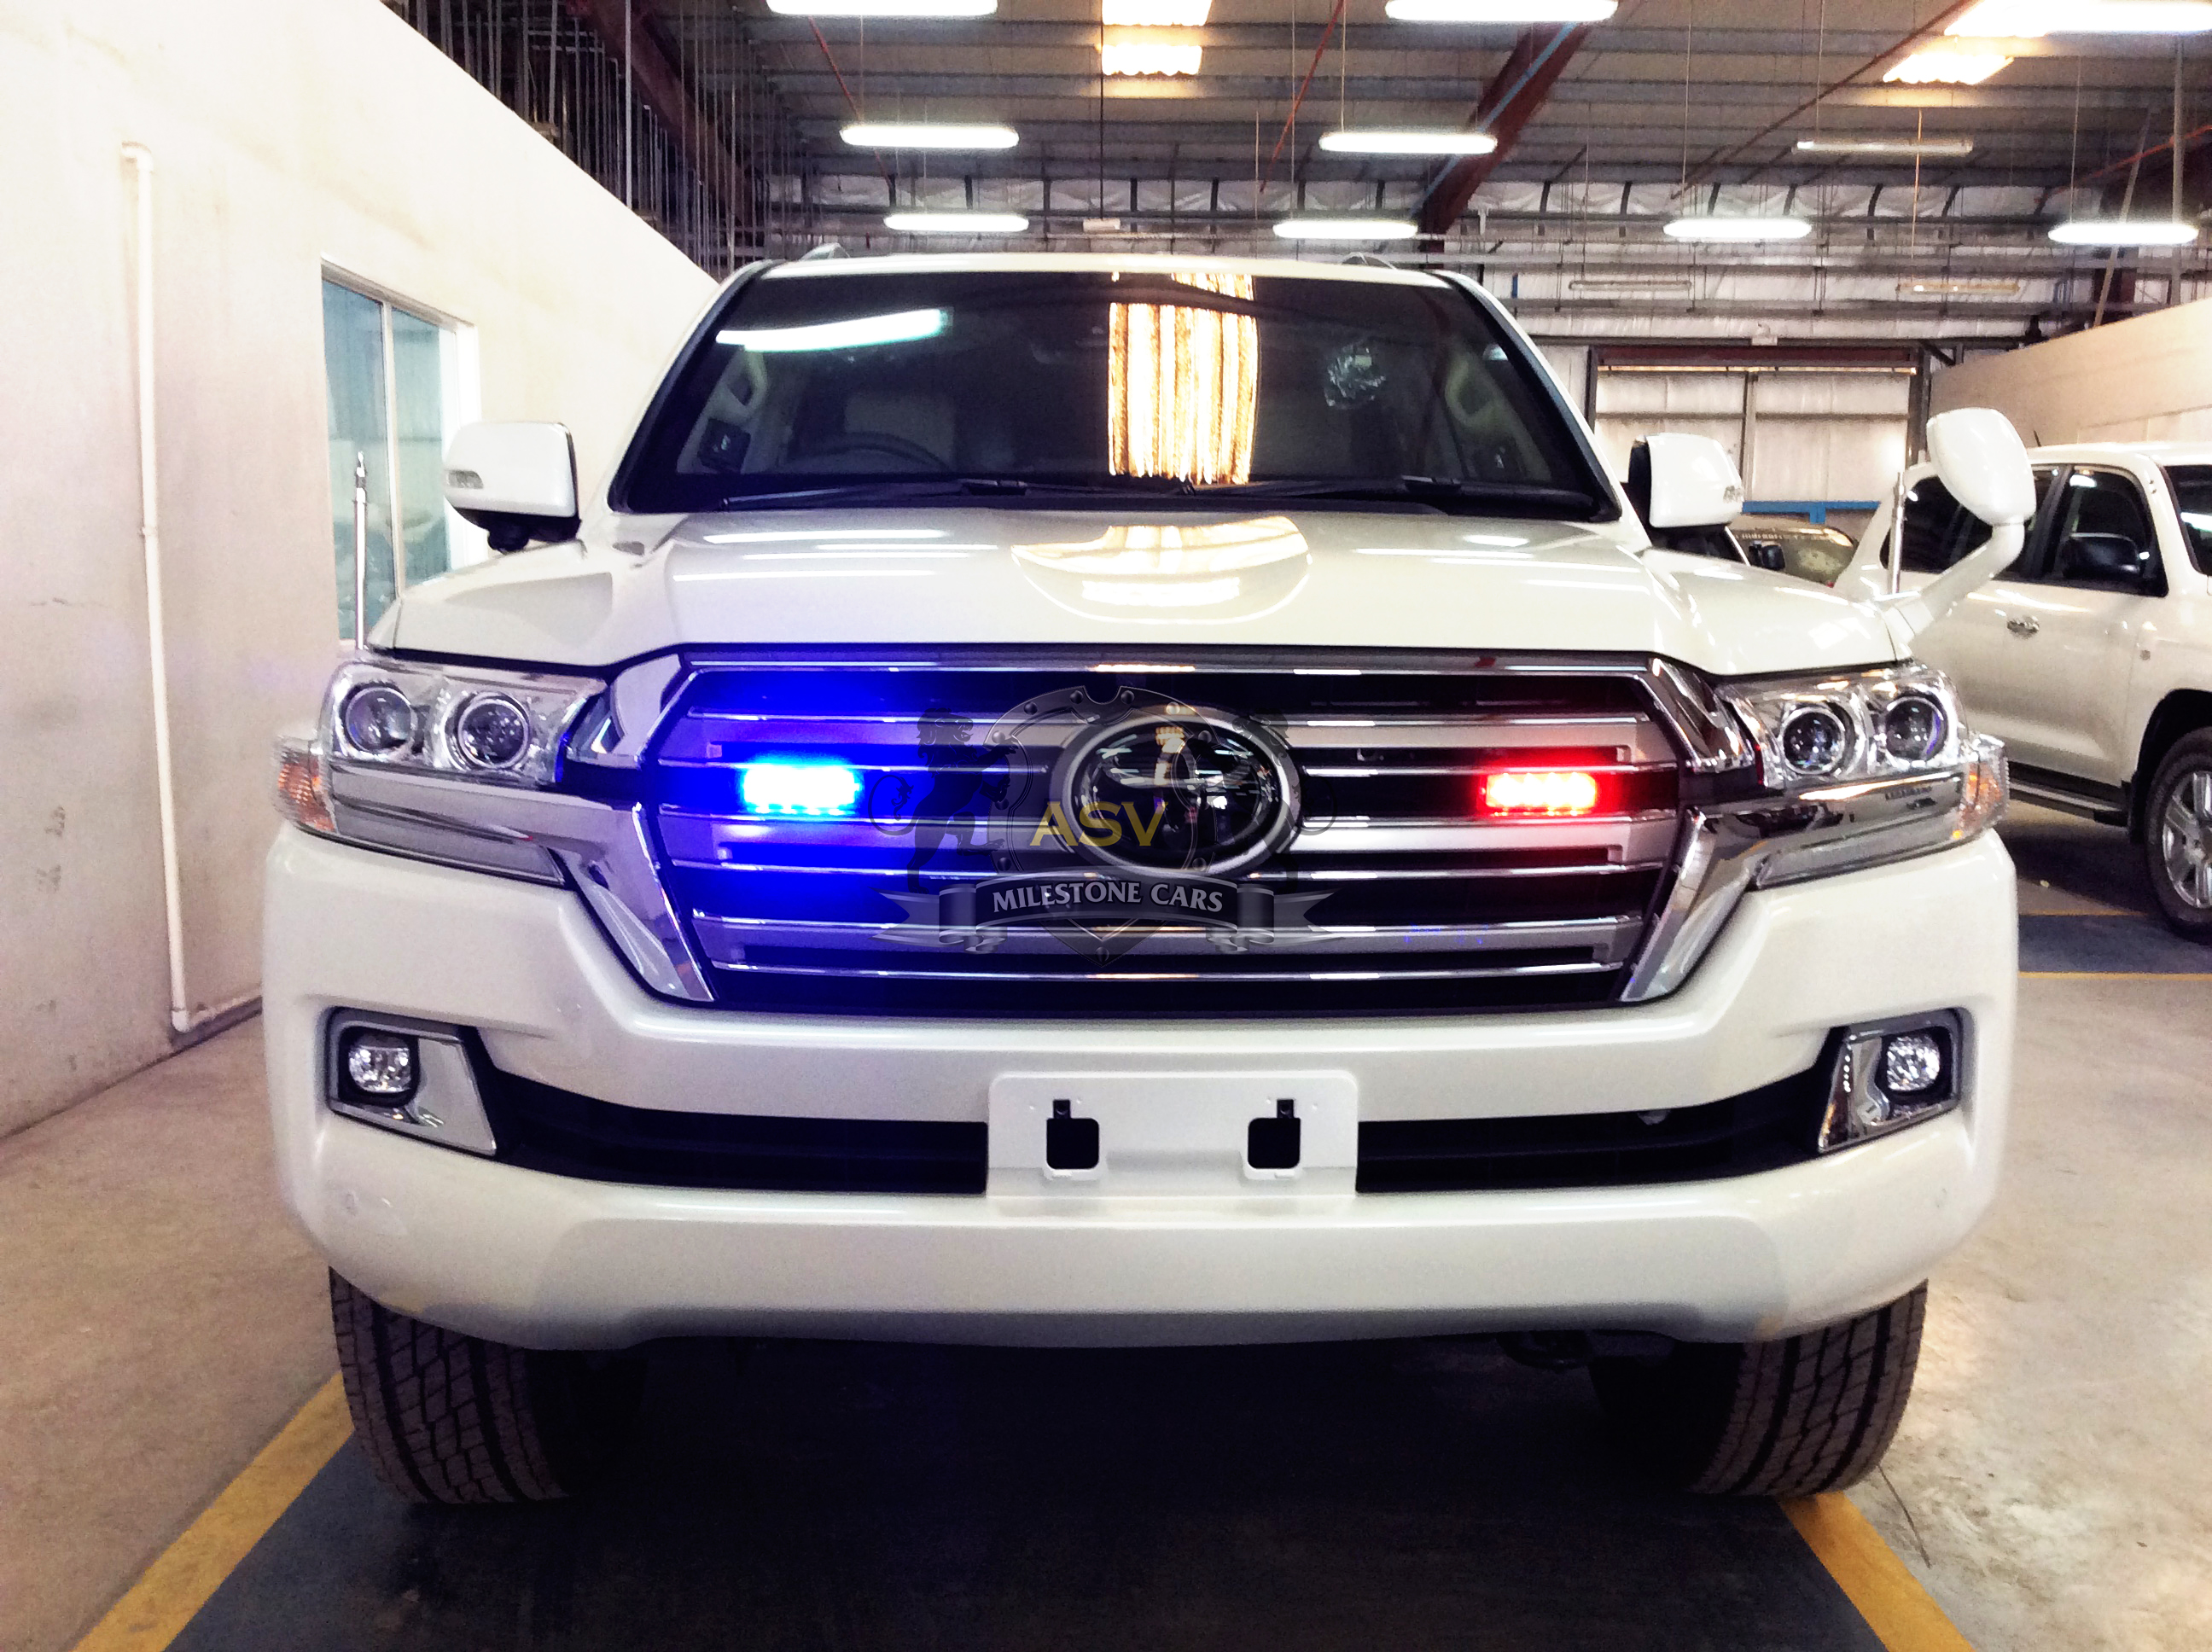 2017 Toyota Land Cruiser 200 Petrol 4.6 (Head Of State)